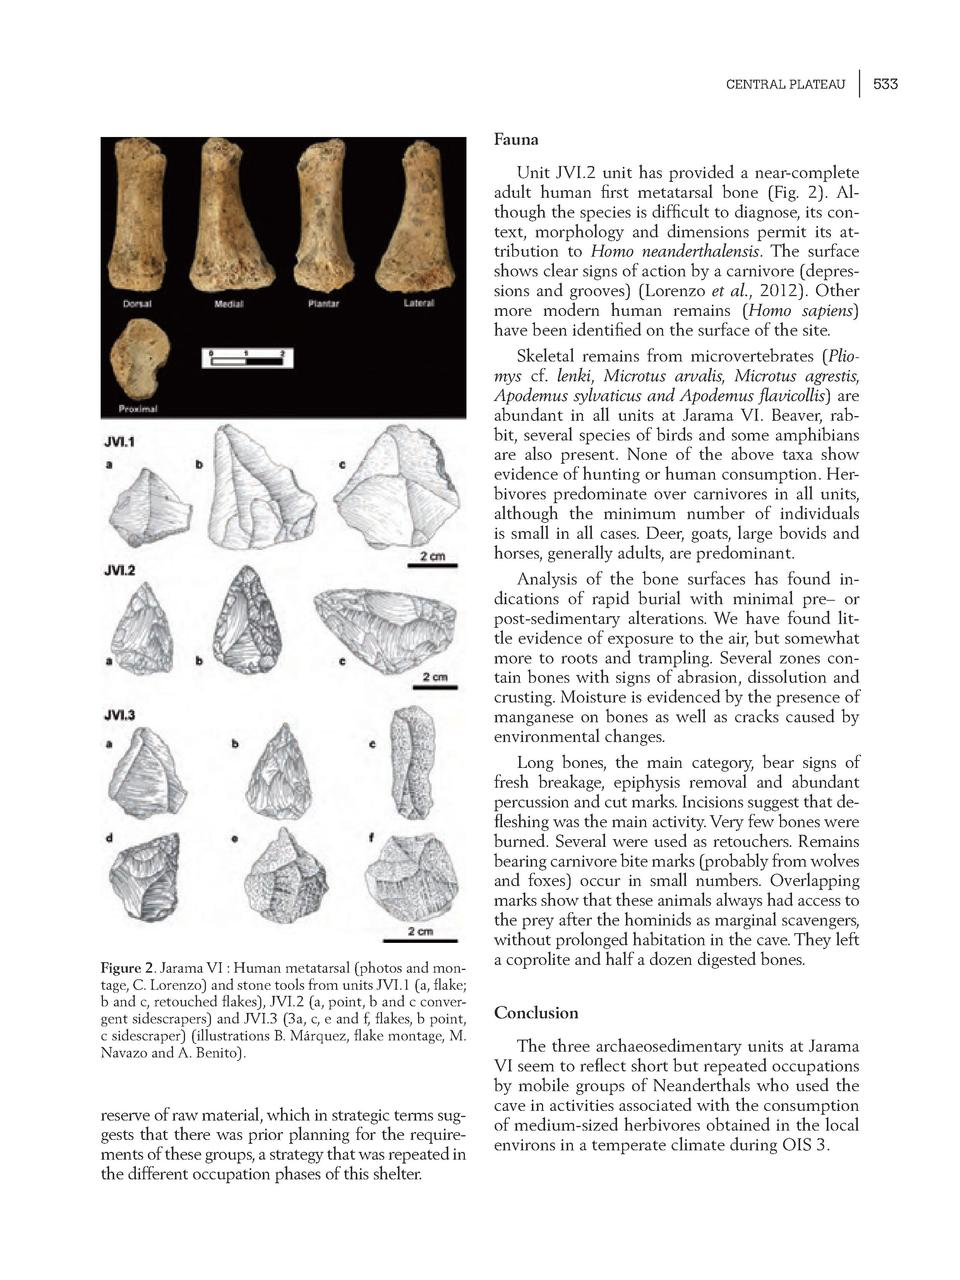 CENTRAL PLATEAU  Fauna Unit JVI.2 unit has provided a near-complete adult human    rst metatarsal bone  Fig. 2 . Although ...